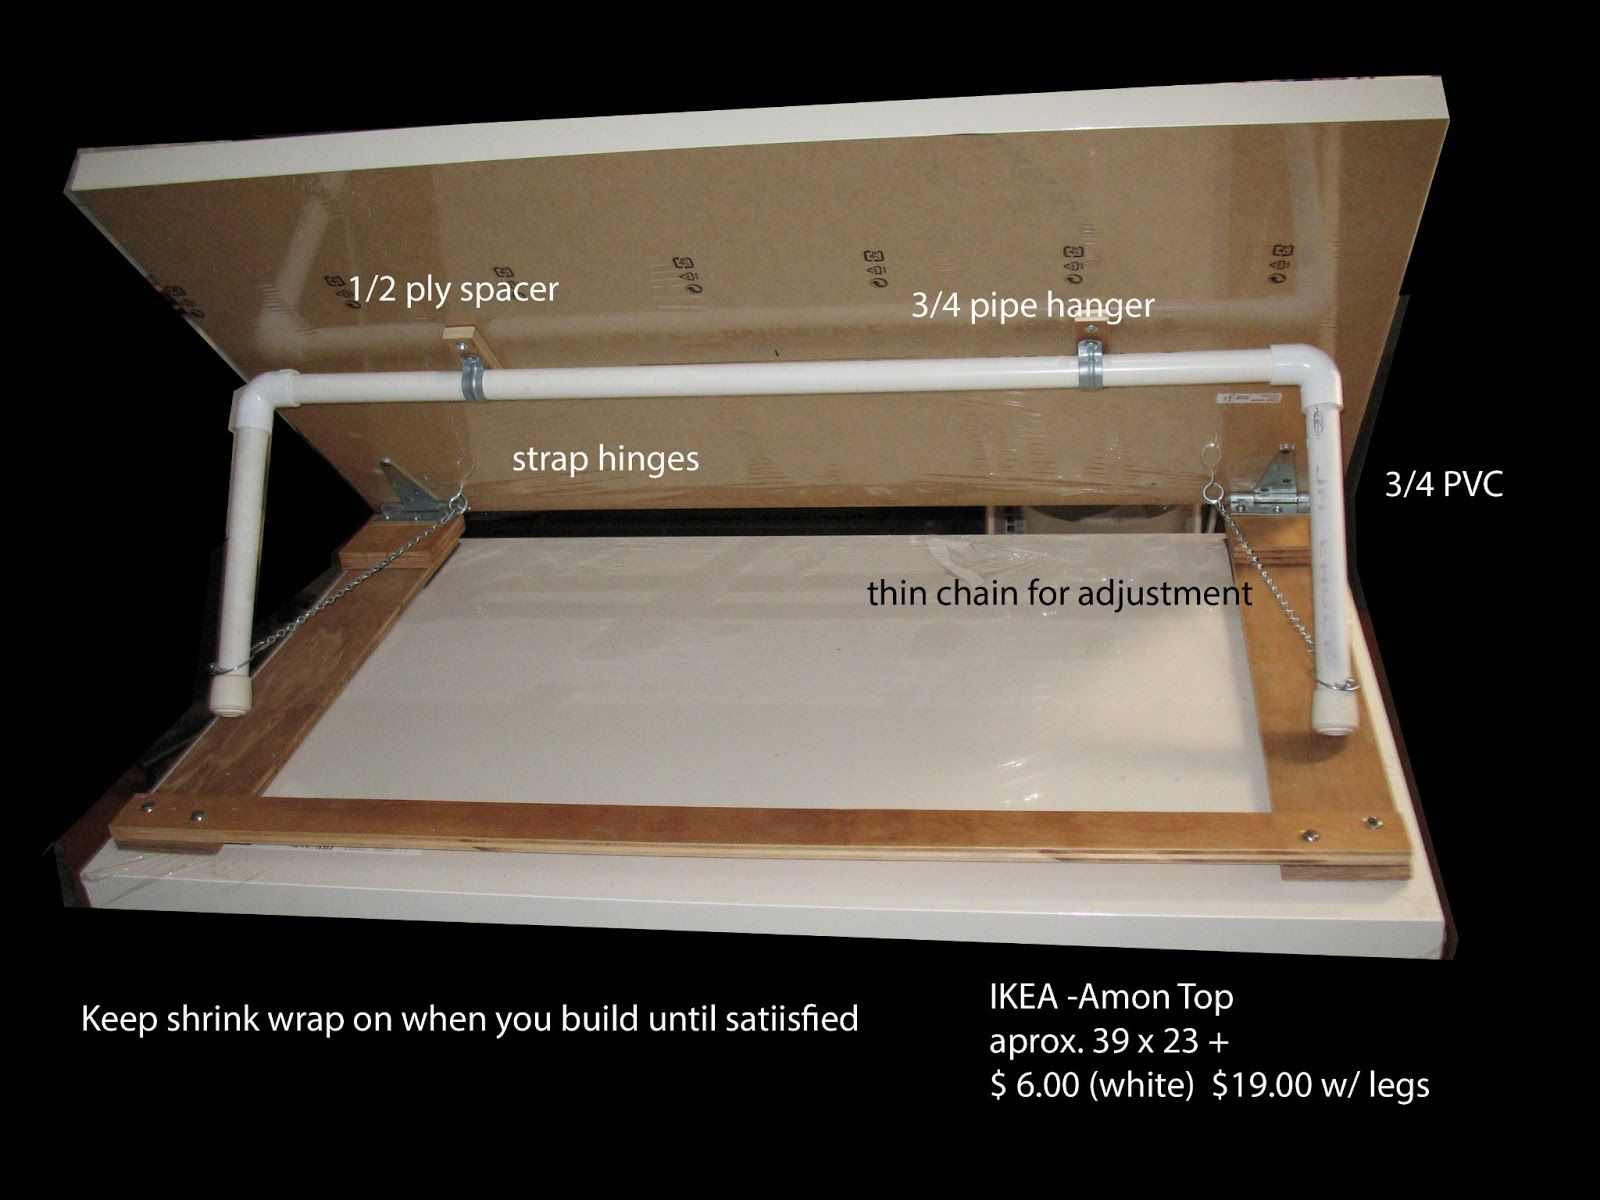 DIY Drafting Table! Iu0027d Maybe Add Some Holes To The Bottom For The Legs Of  The Pvc Pipe So The Table Is More Secure At The Desired Height Rather Than  Just ...